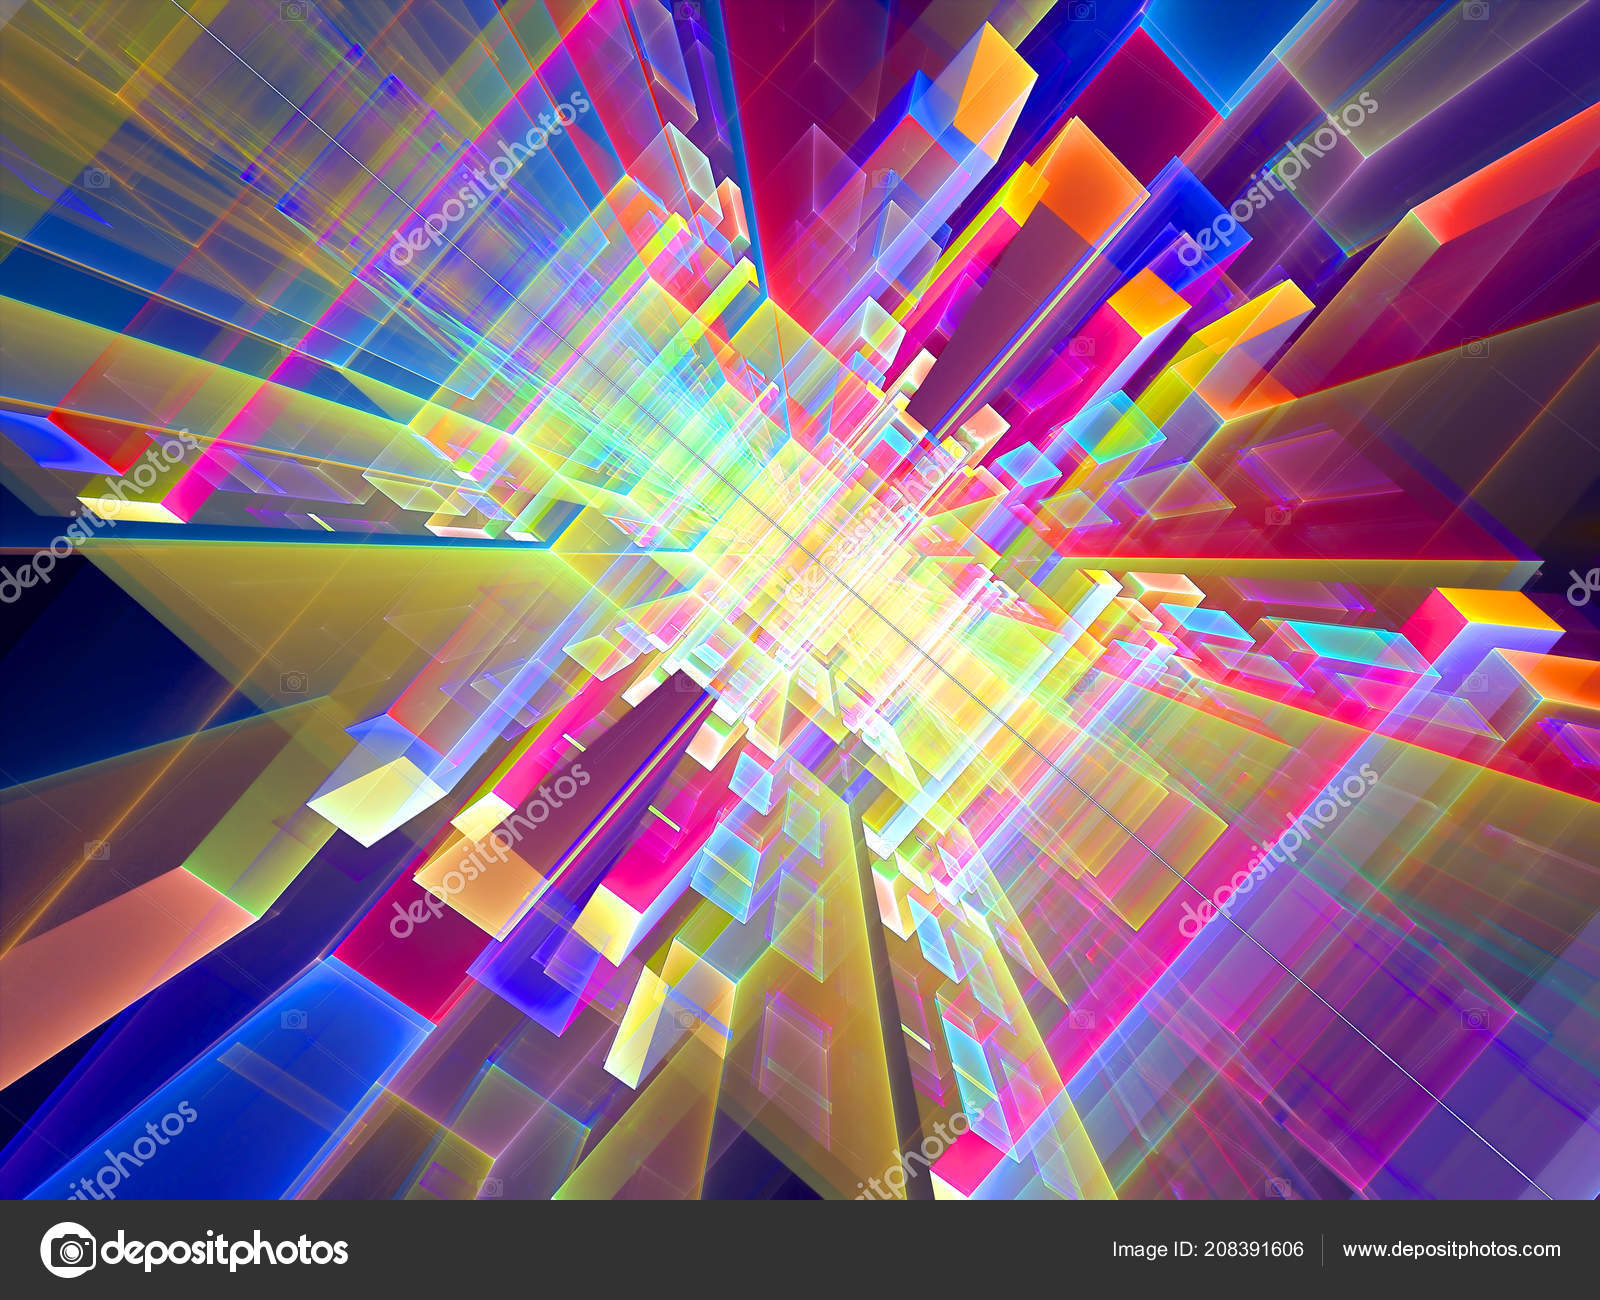 Abstract Futuristic Colored Portal Digitally Generated